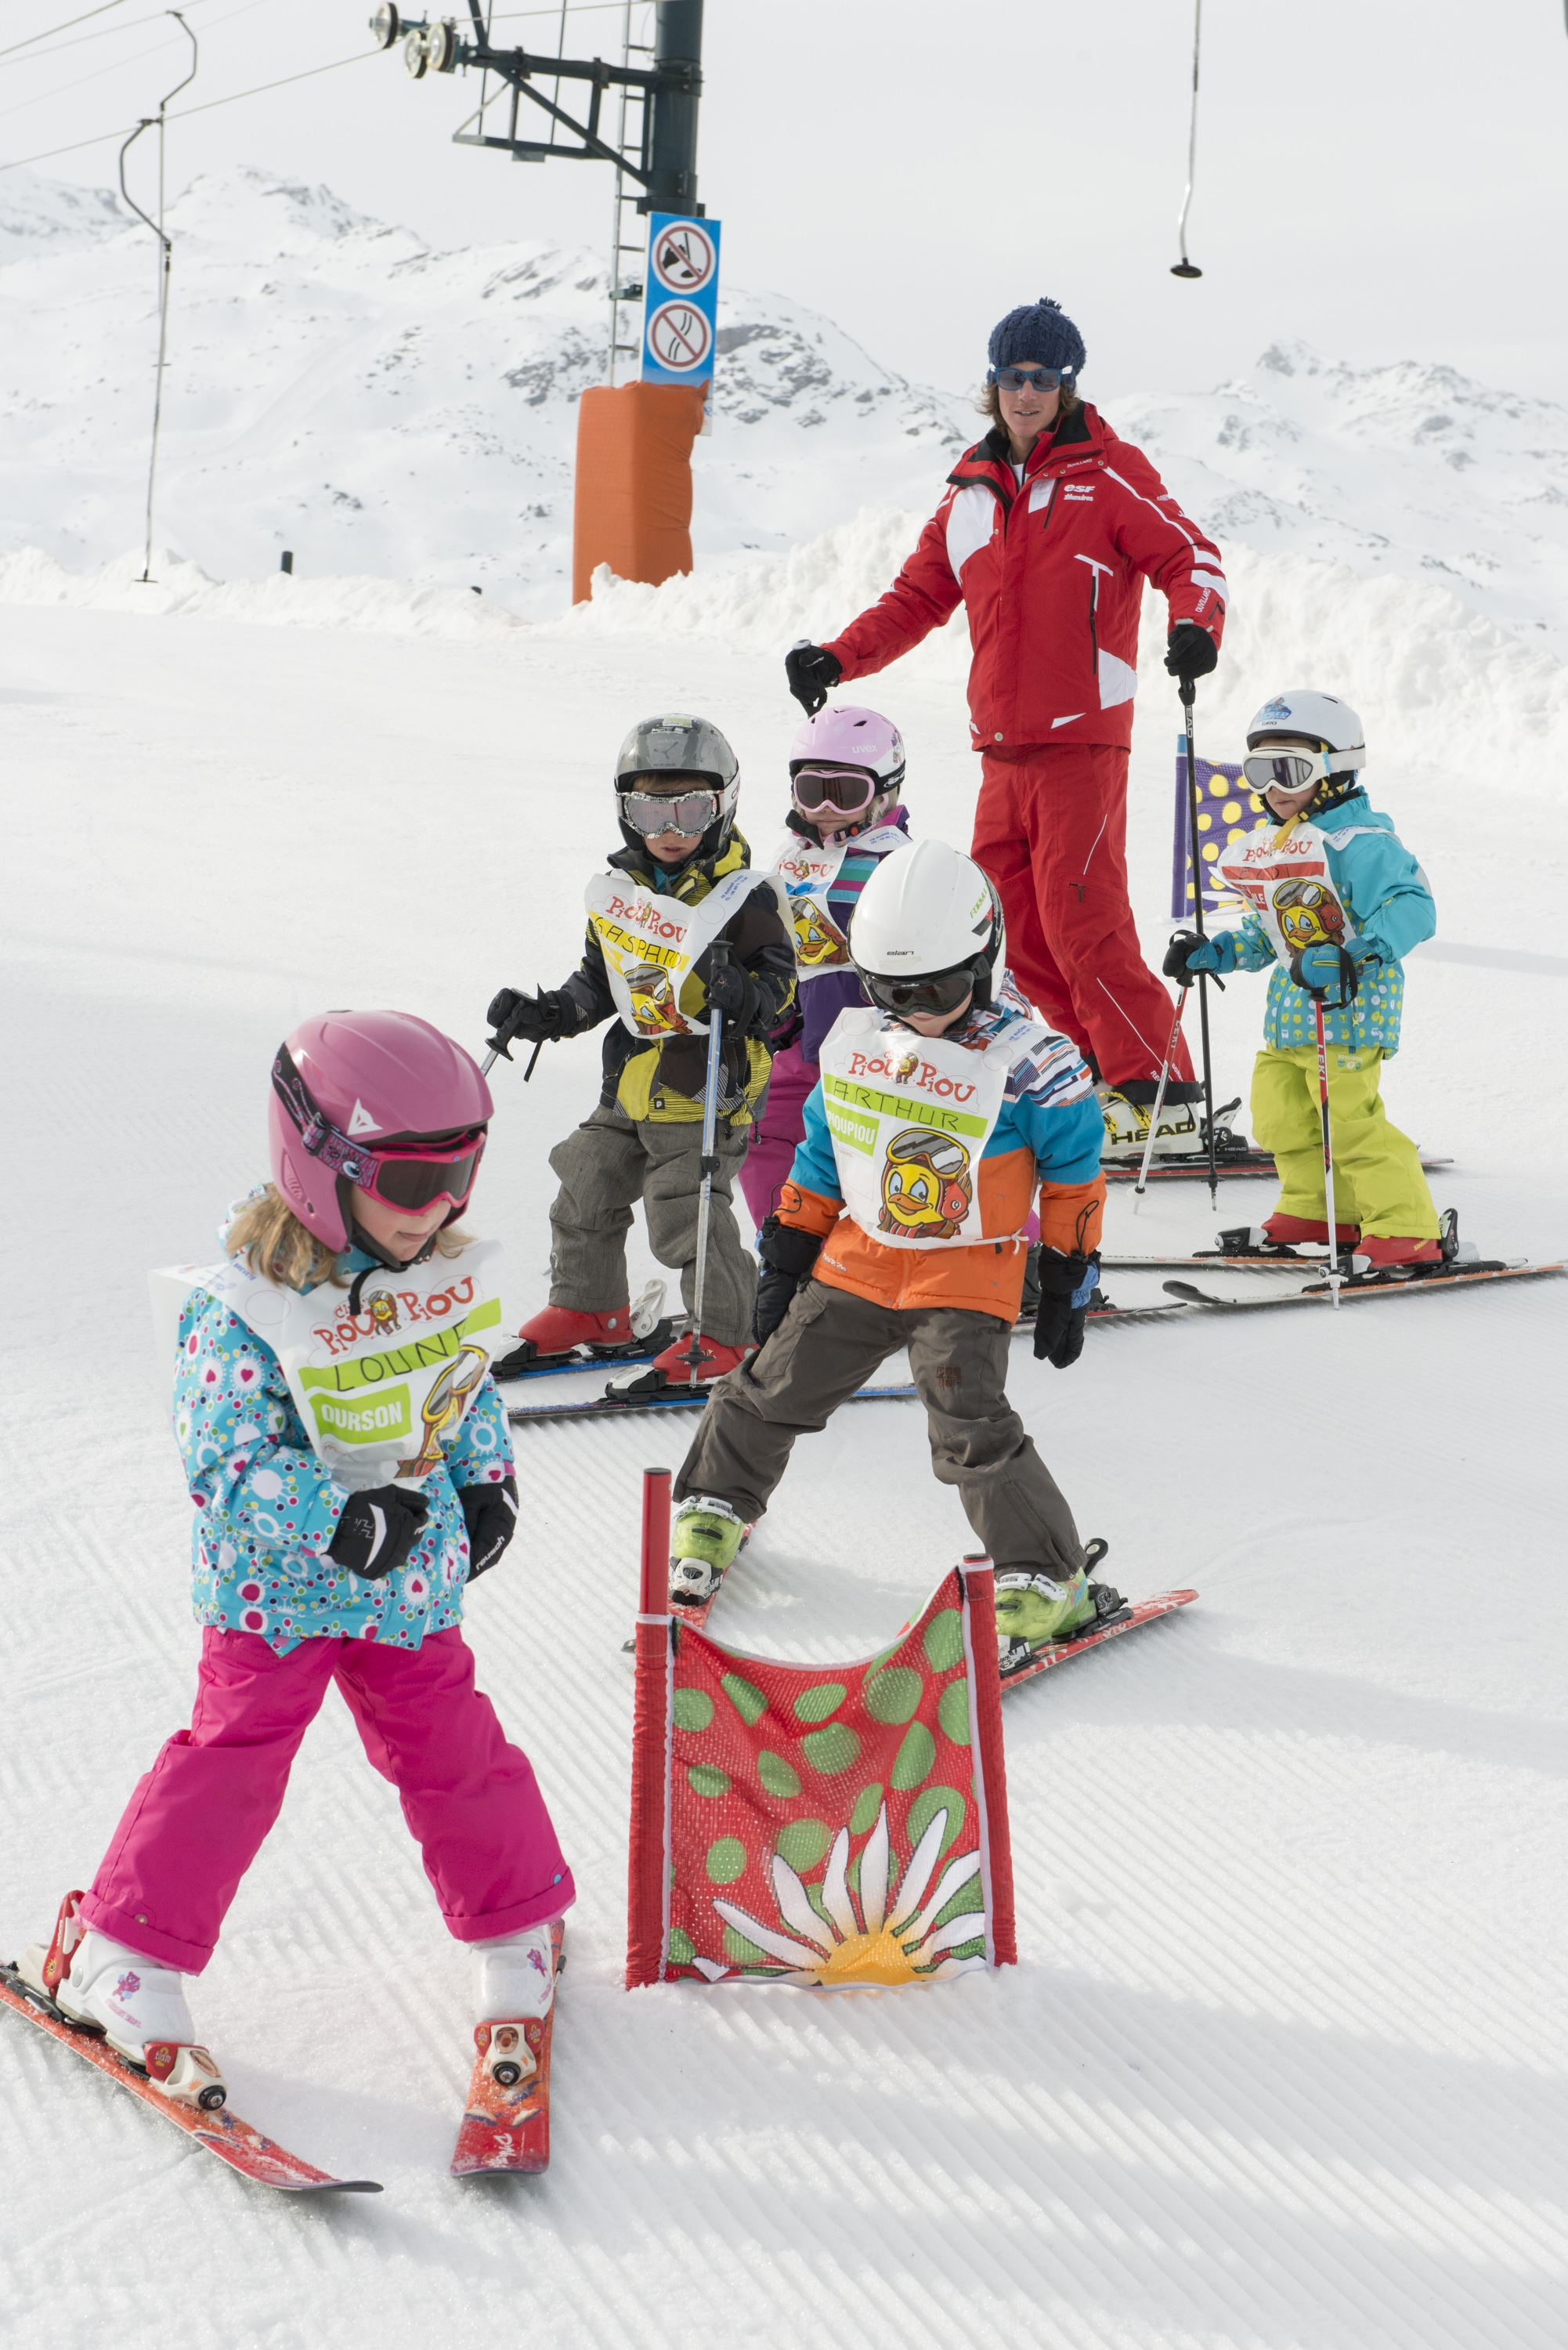 Group ski lessons 6 days, Piou Piou Village, 4 to 5 years (unavailable in Saint Martin de Belleville), beginner till snowflake level